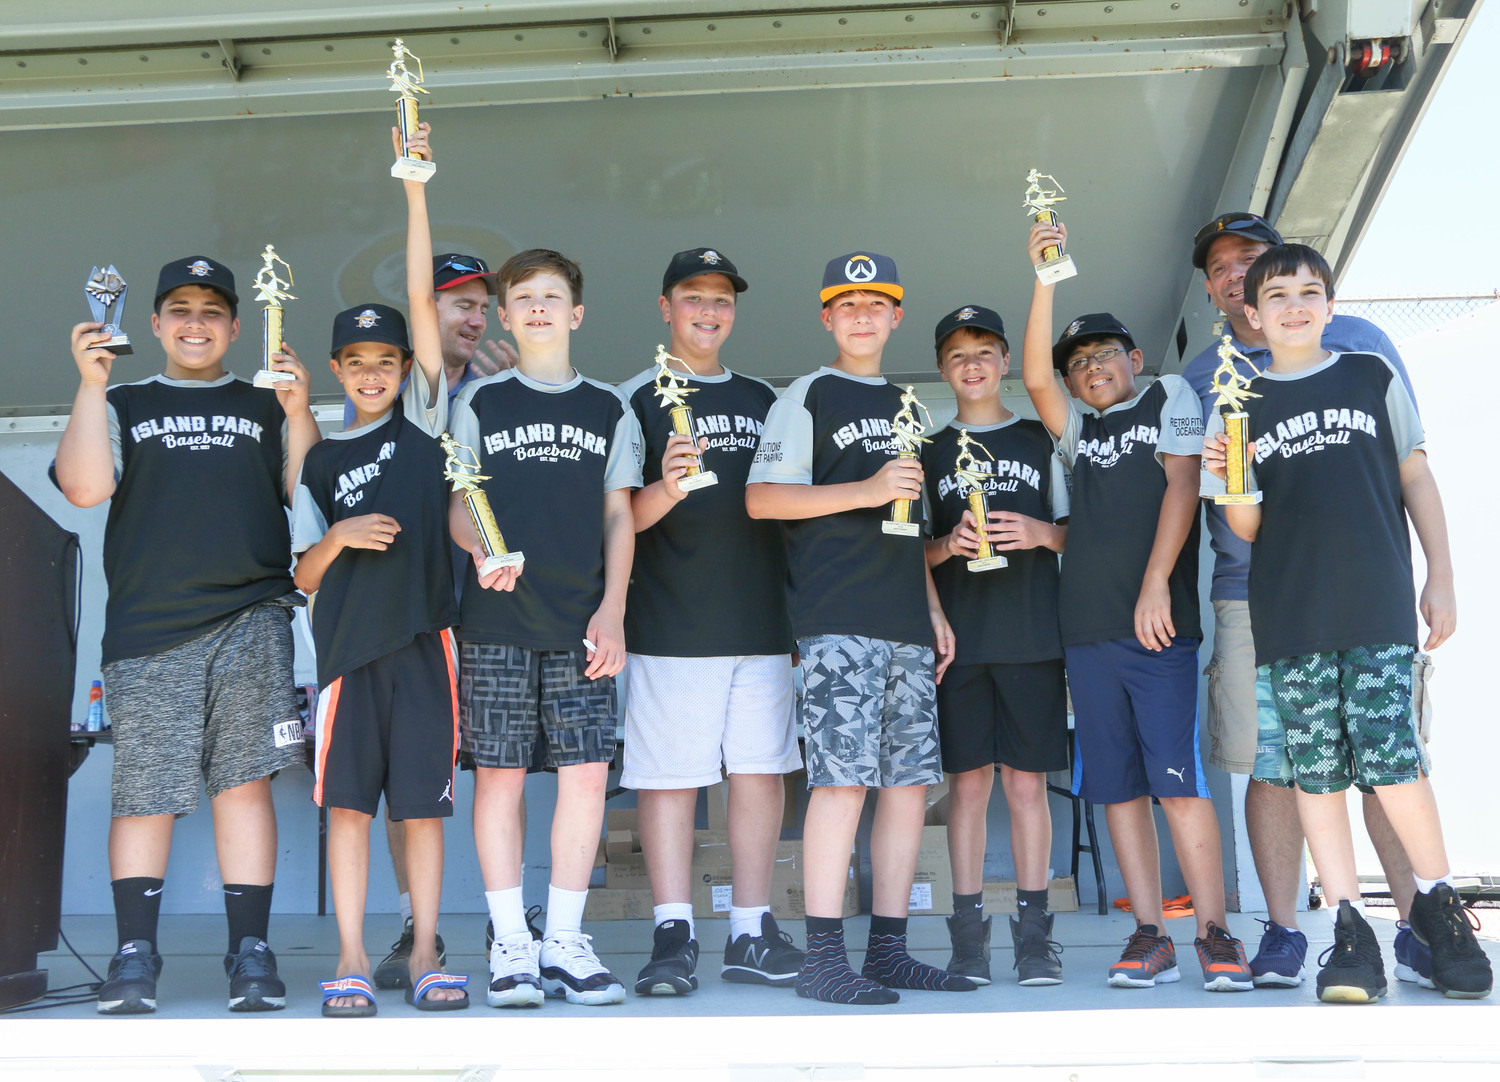 The older kids from the Island Park Buccaneers felt good about getting some trophies.